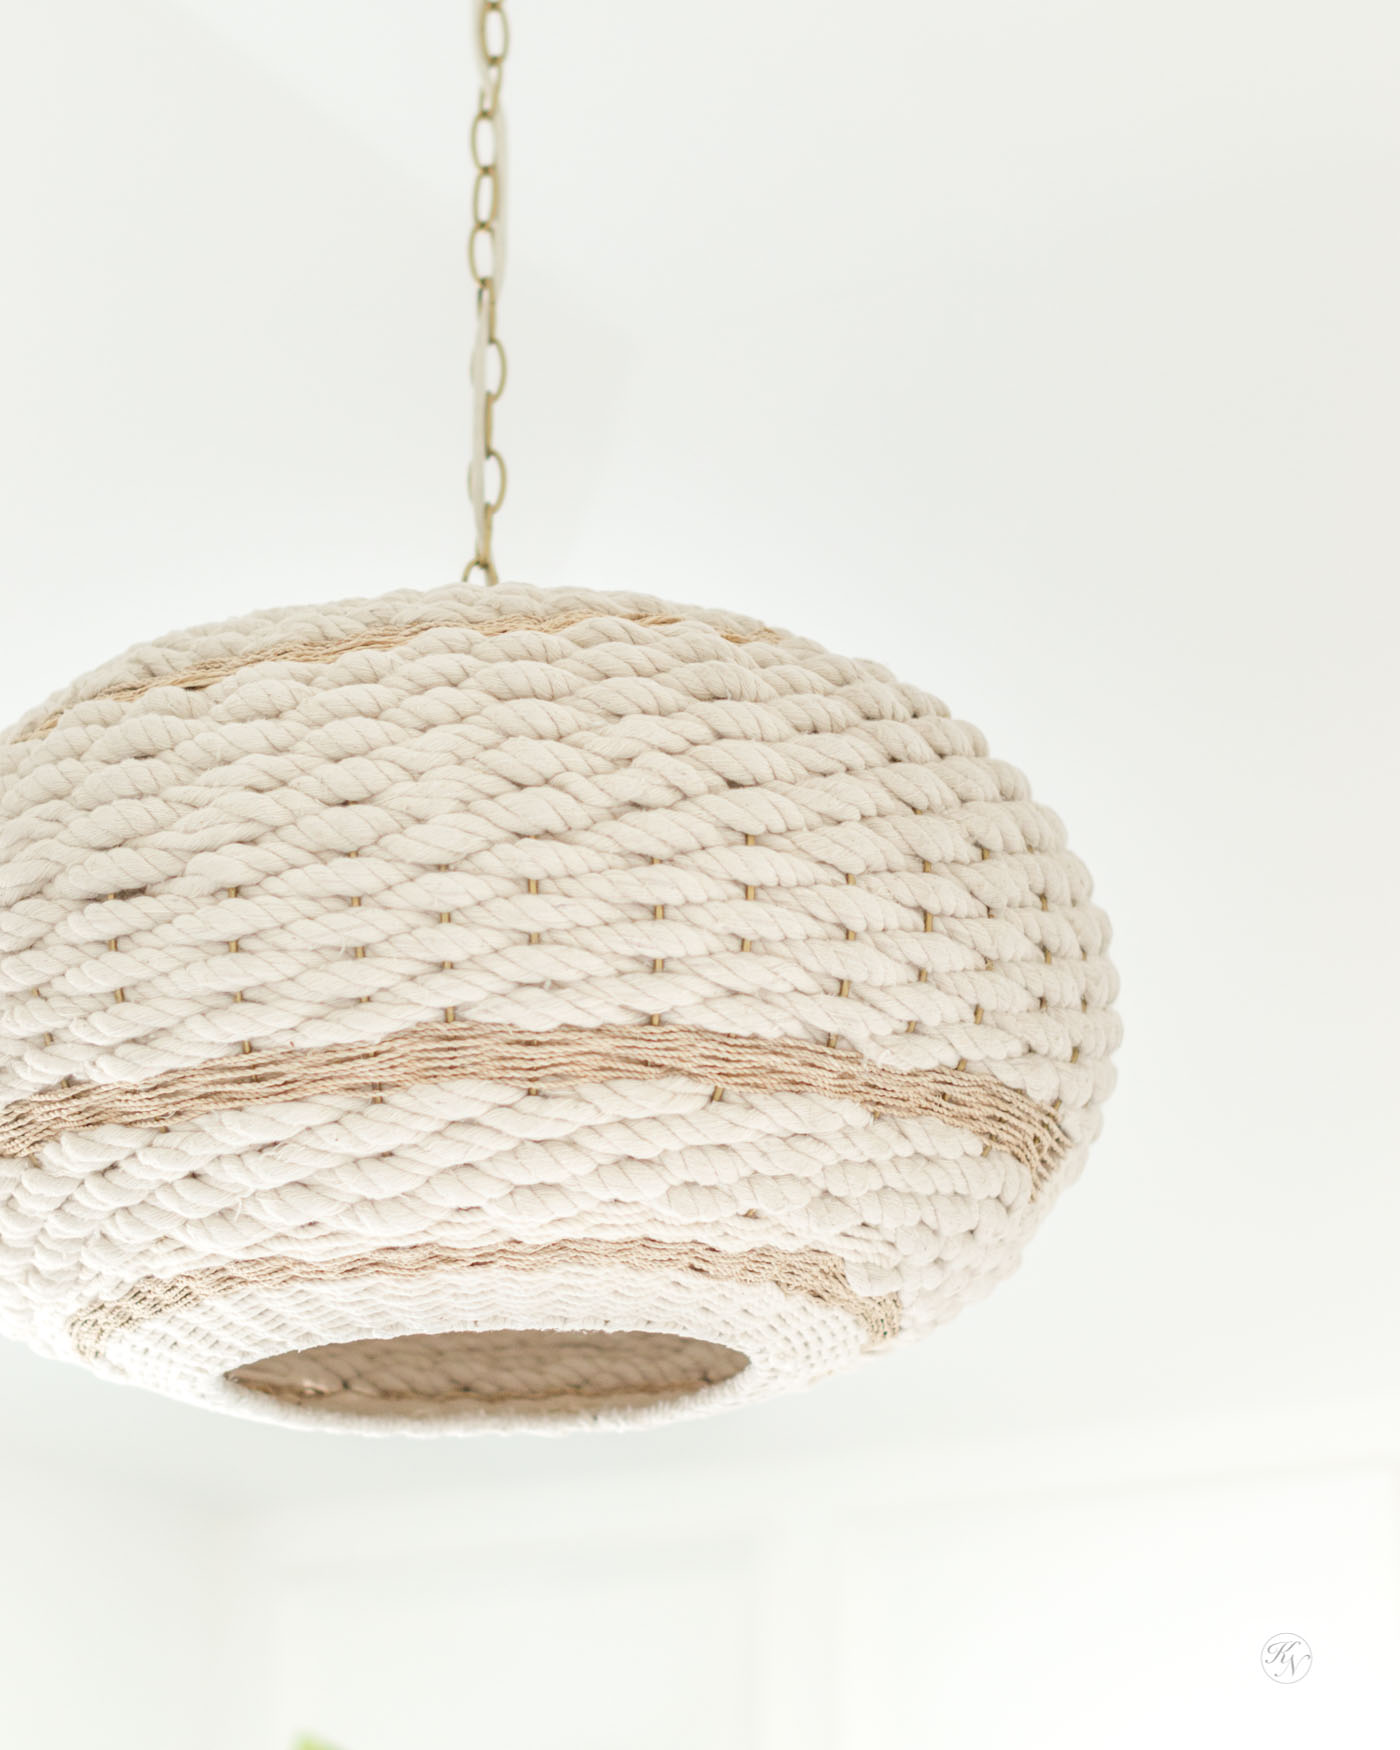 Boho Rope Pendant Light with